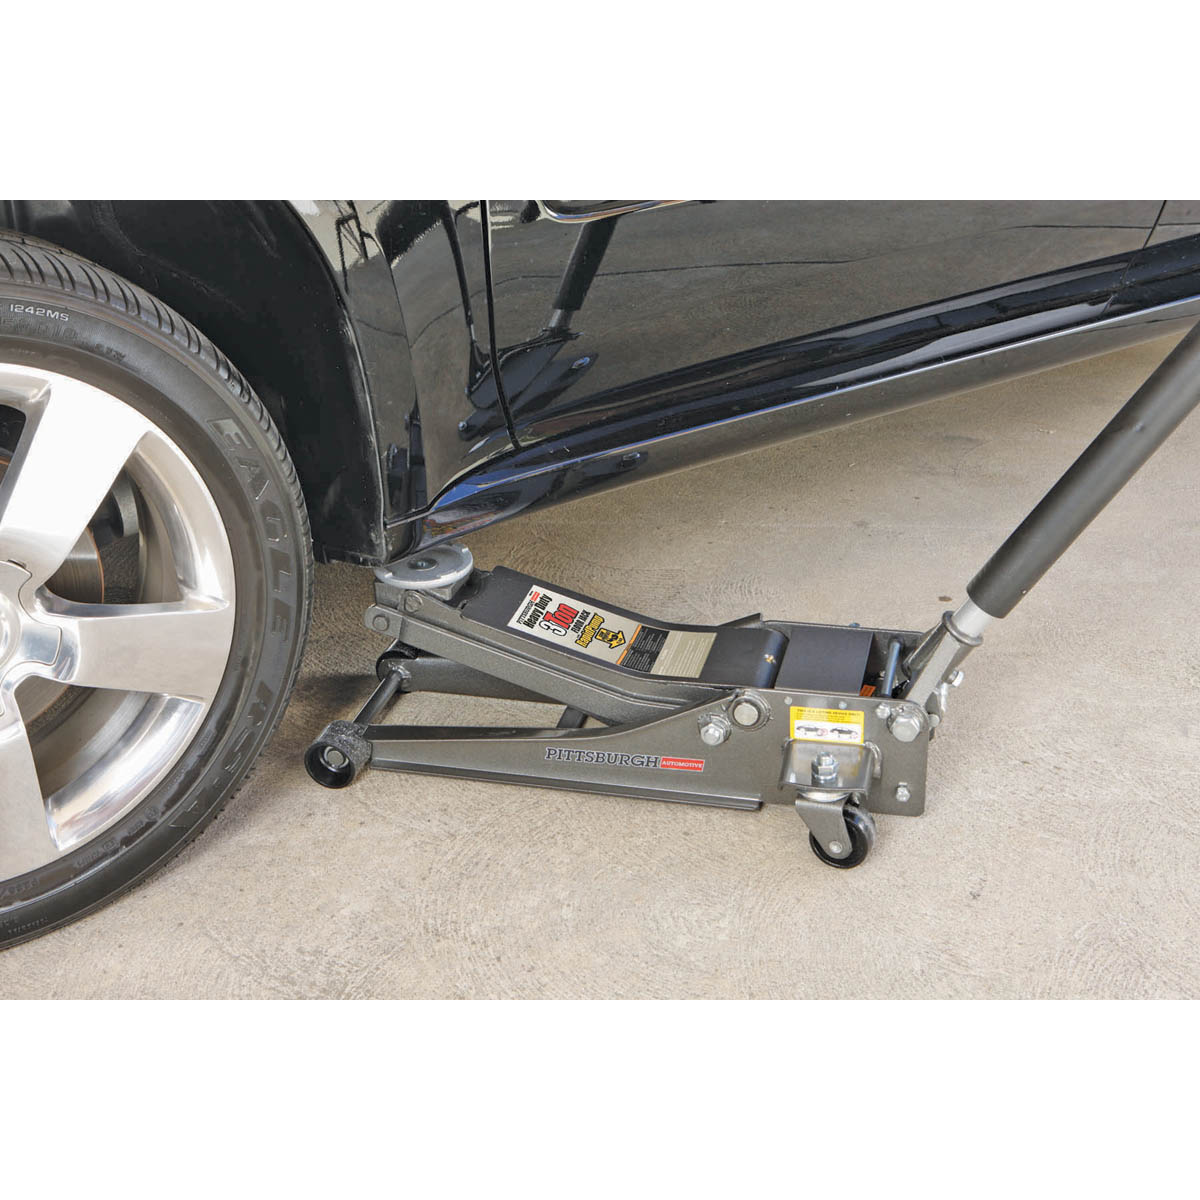 The Inside Track On Rapid Products Of Fitness: 3 Ton Low Profile Steel Heavy Duty Floor Jack With Rapid Pump®